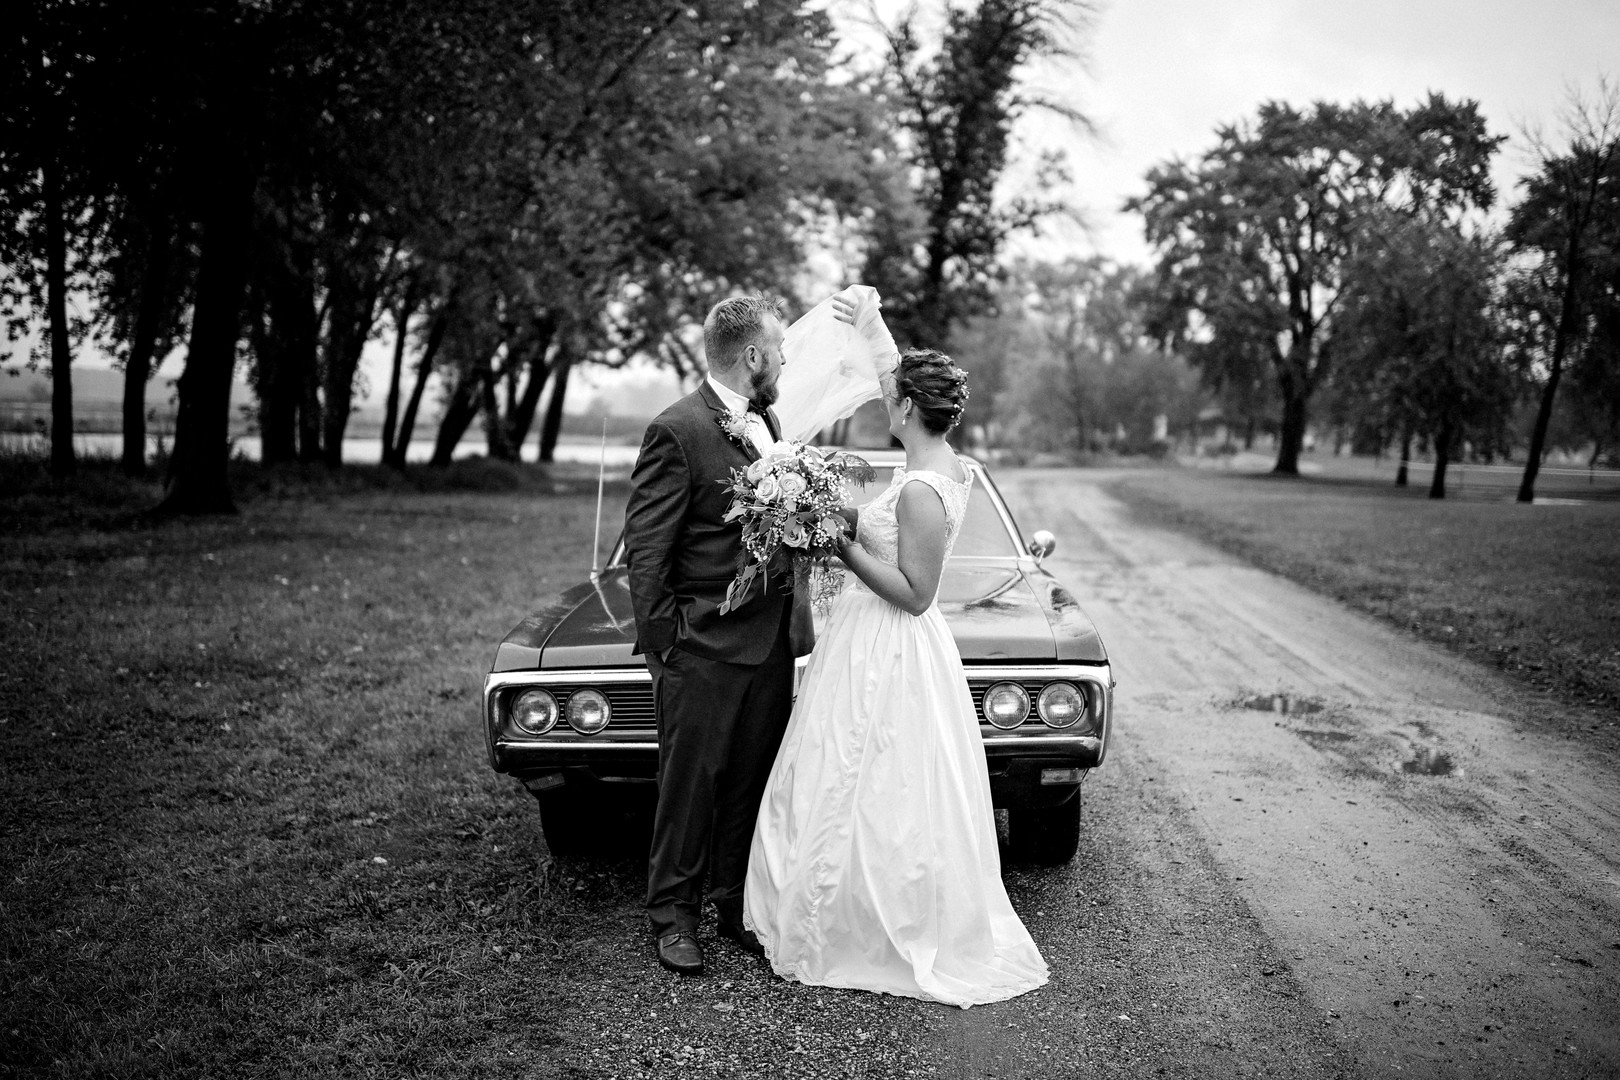 La Crosse Wisconsin Outdoor Unposed Lifestyle Wedding Photographer